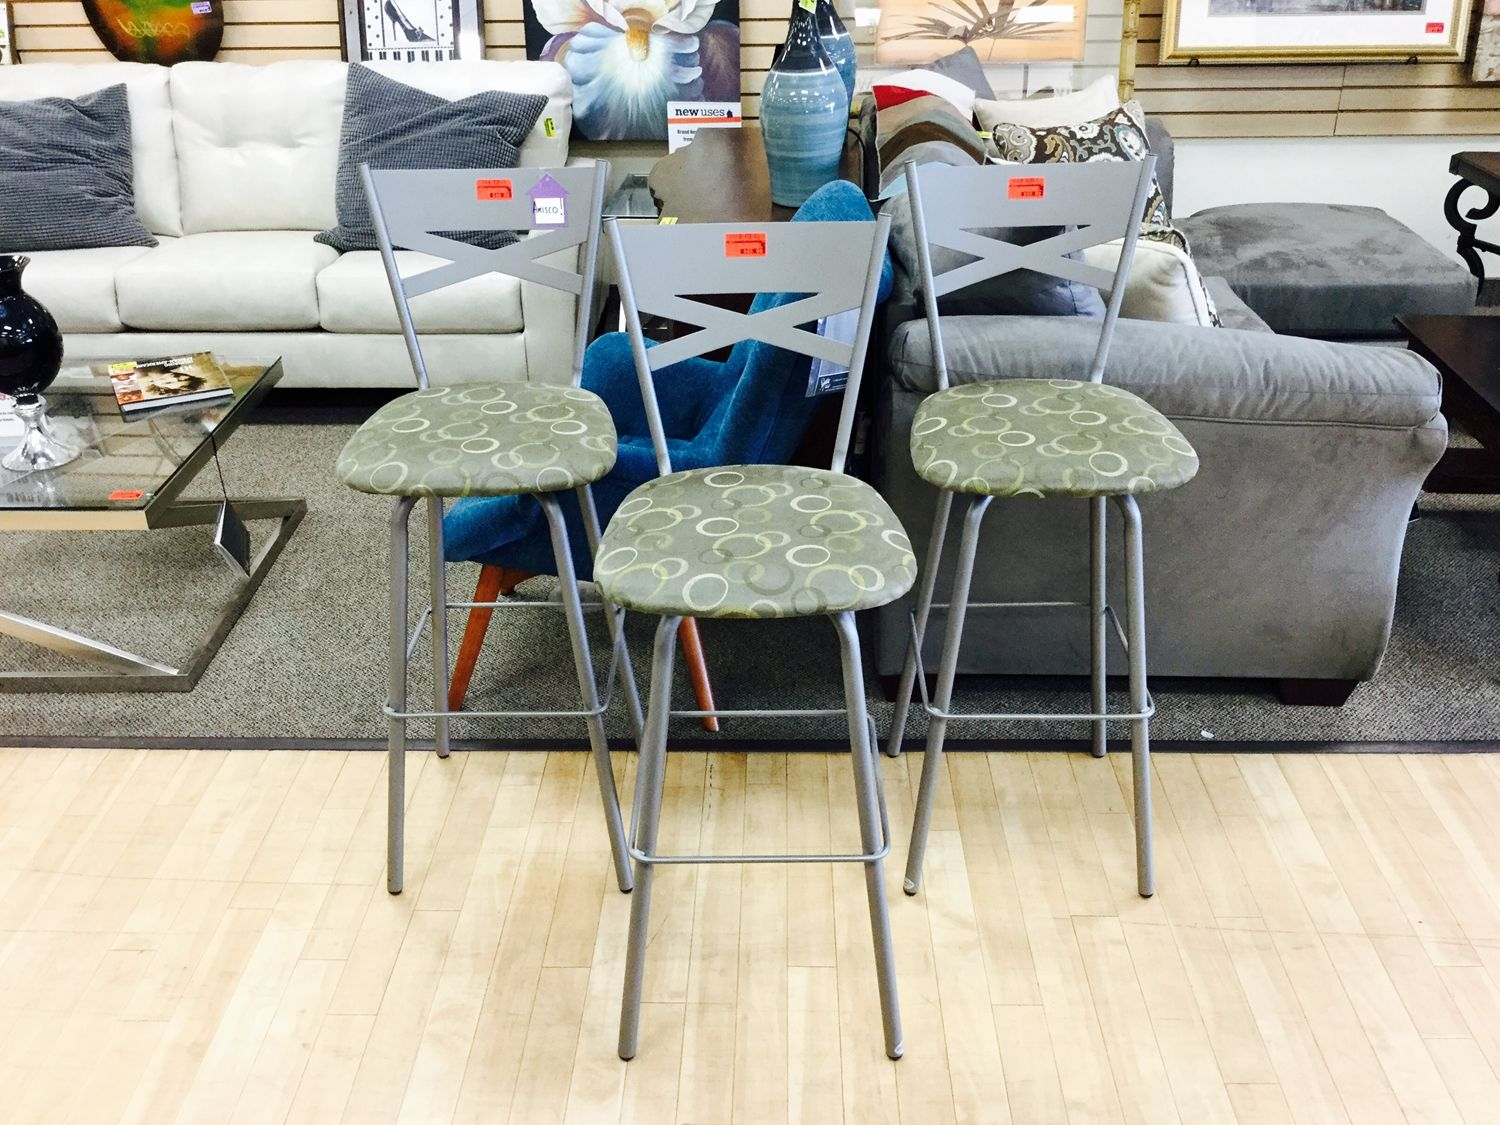 SAVE 20% OFF ALL RED TAG MERCHANDISE: Sturdy Amisco brand swiveling bar stools that drop to $106 for all three as part of the Red Tag Sale!